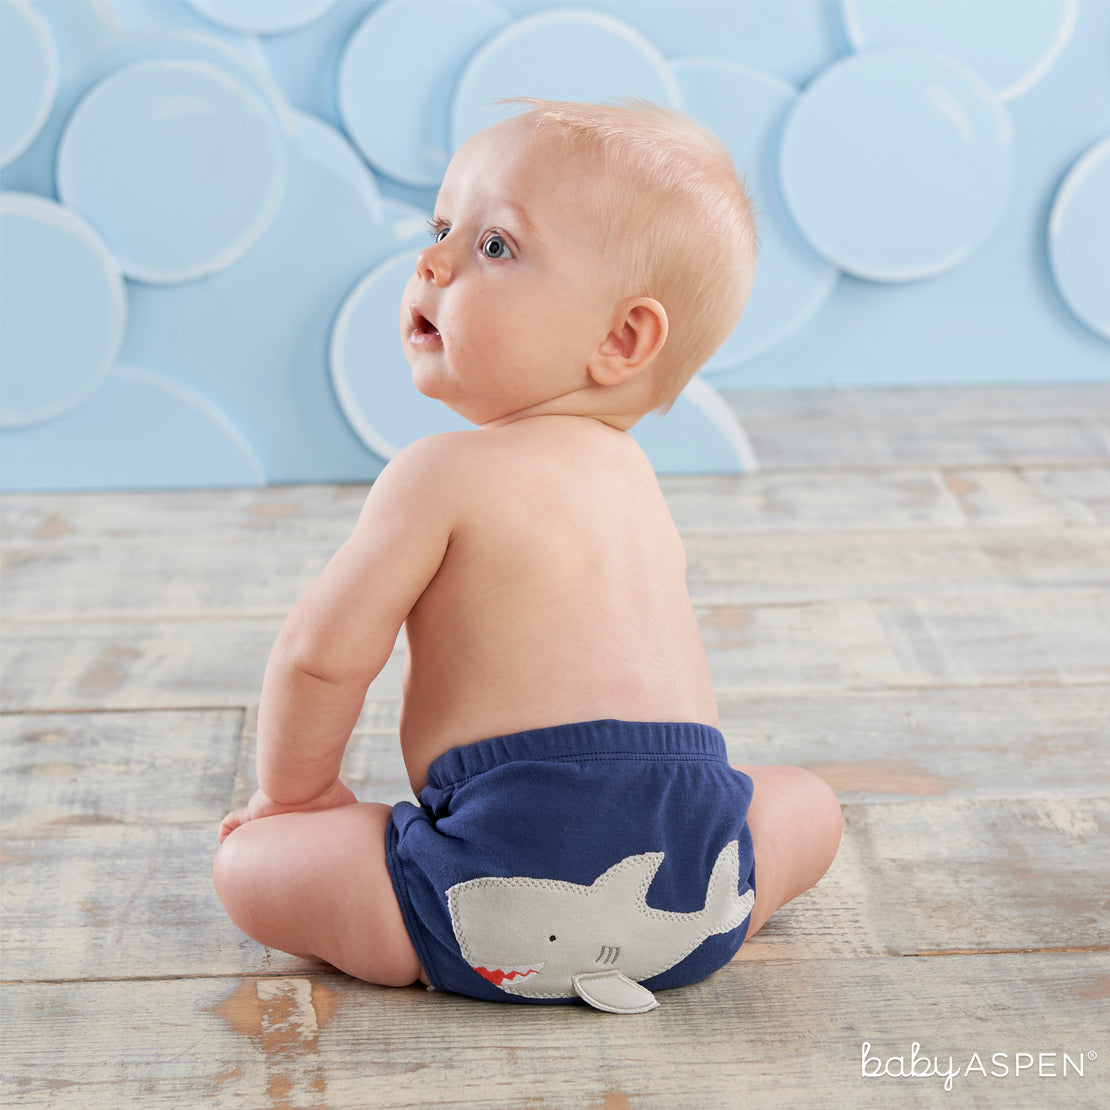 Under The Sea 3-Piece Diaper Cover Gift Set - Boy | Brilliant Beach Baby Gifts + A Giveaway | Baby Aspen